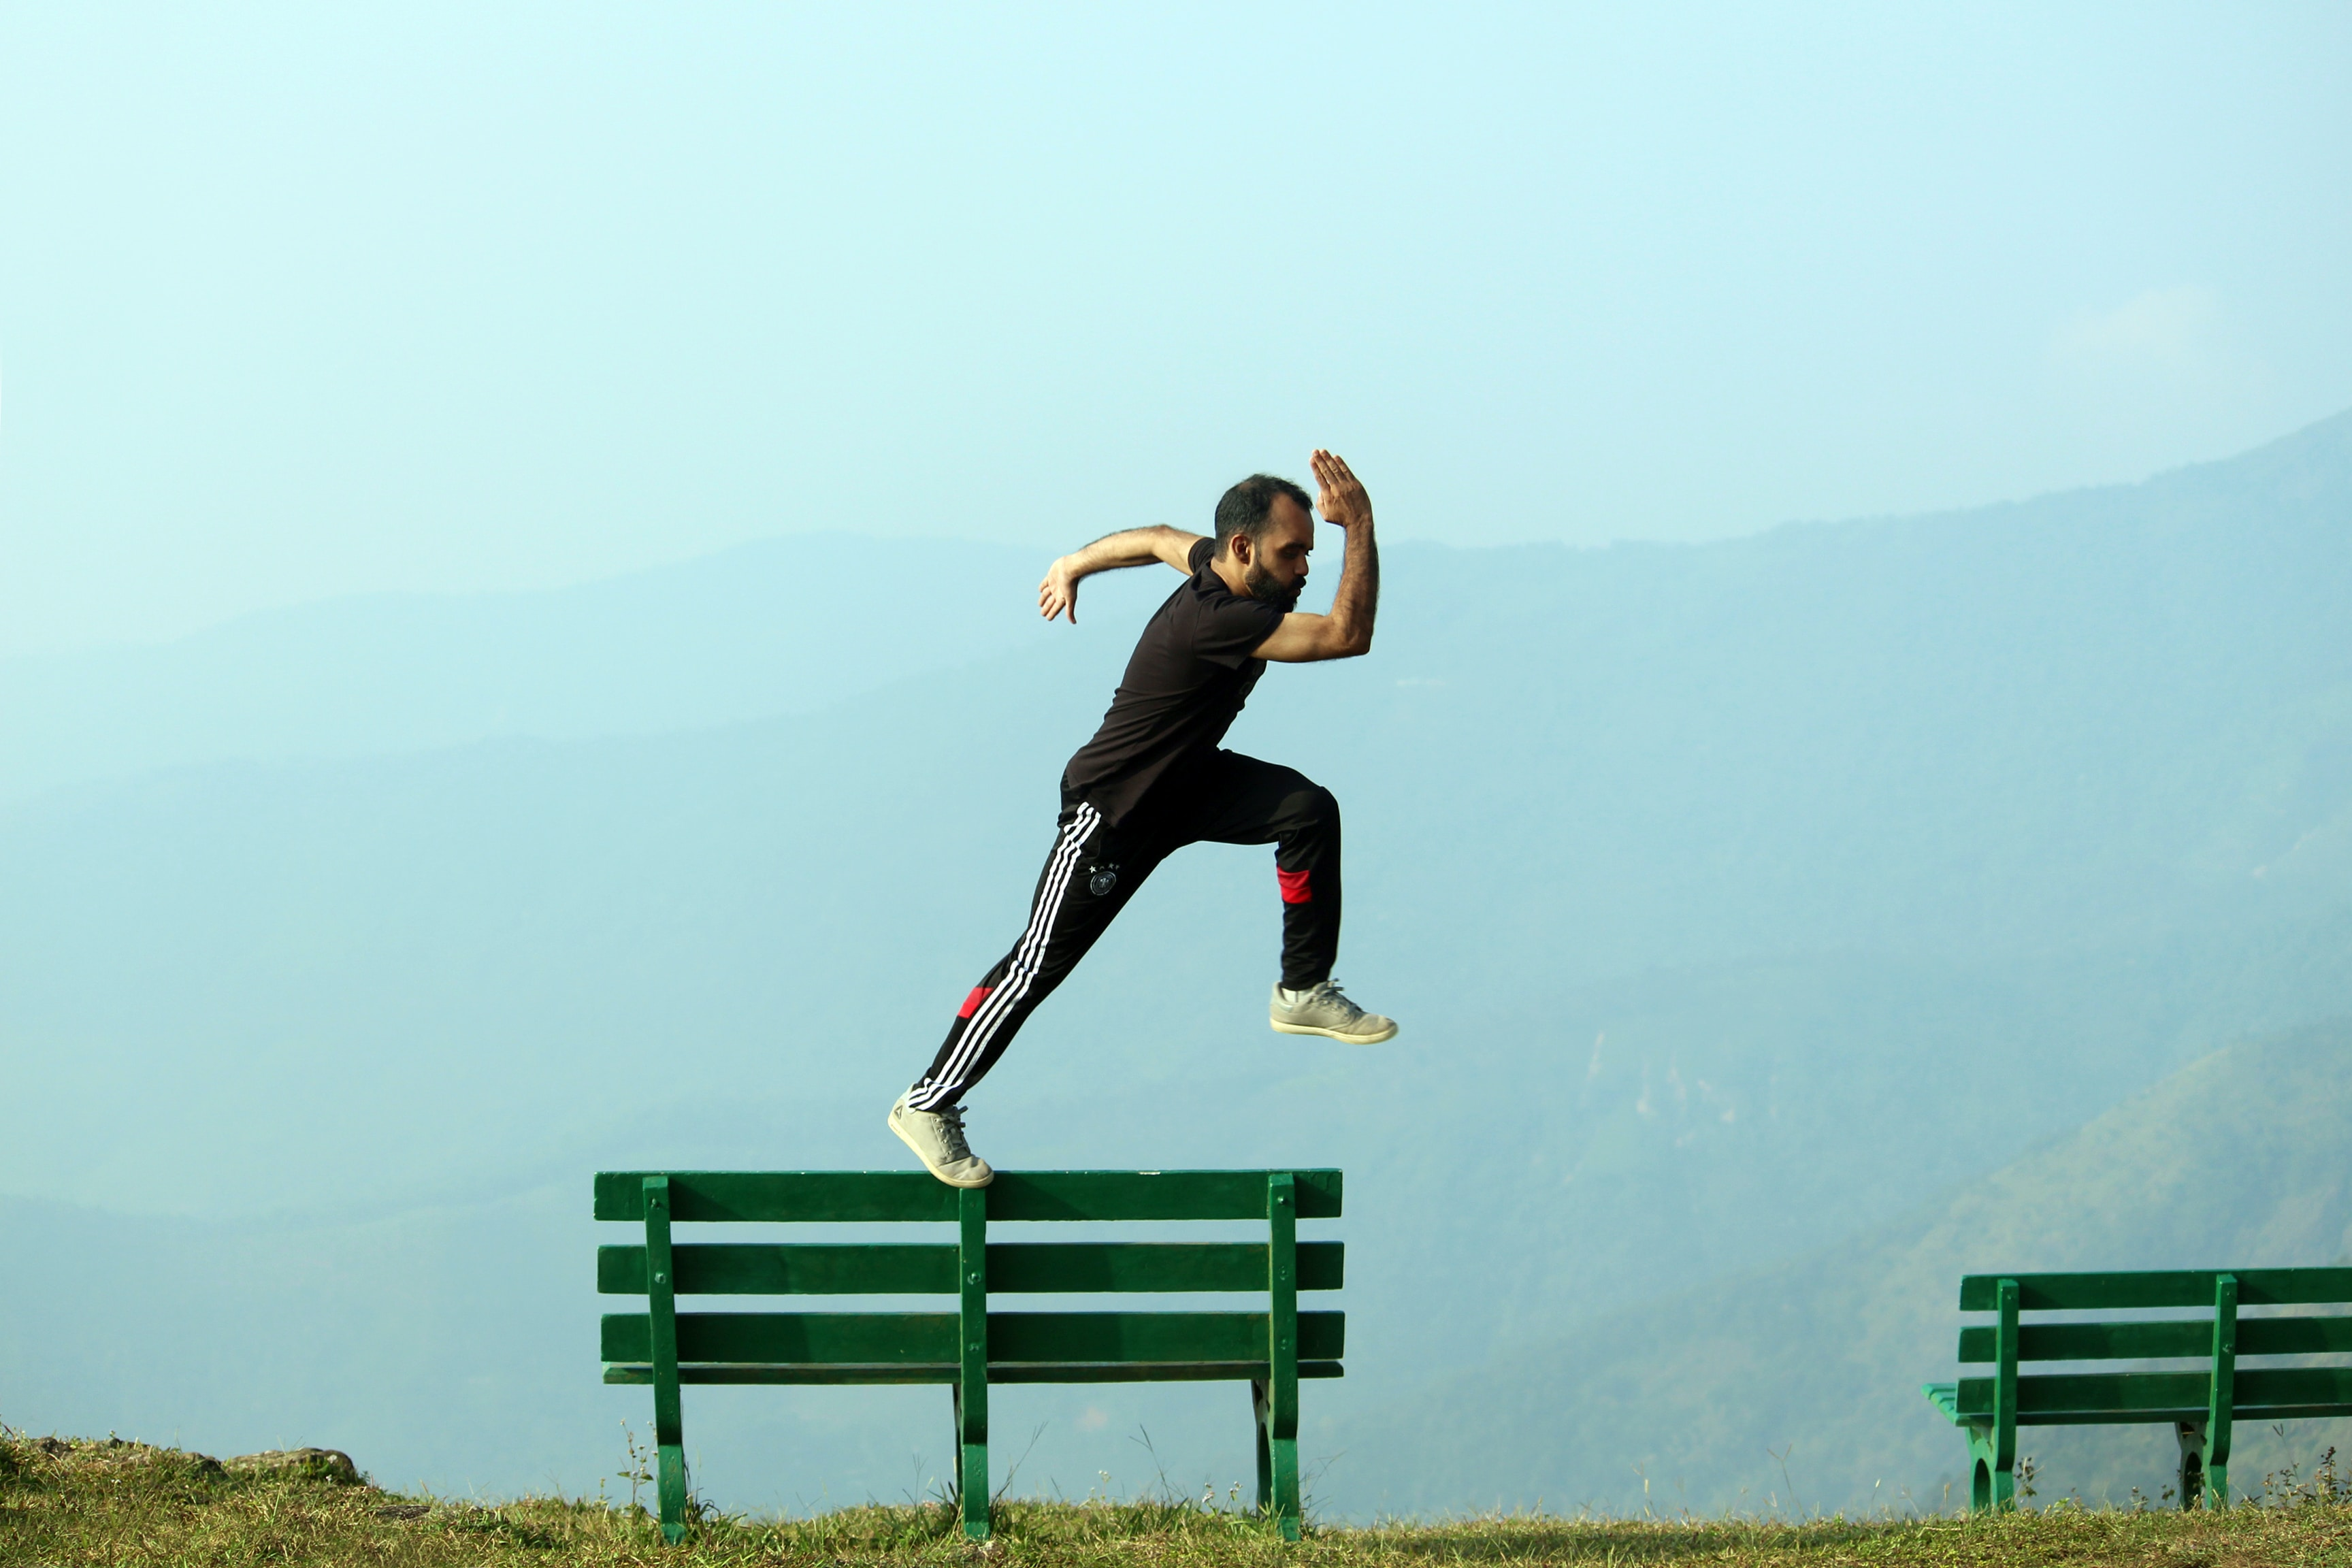 A man running across the back of a park bench looking like he is about to leap into the air. In the background is a mountain shrouded with mist with a deep valley below.